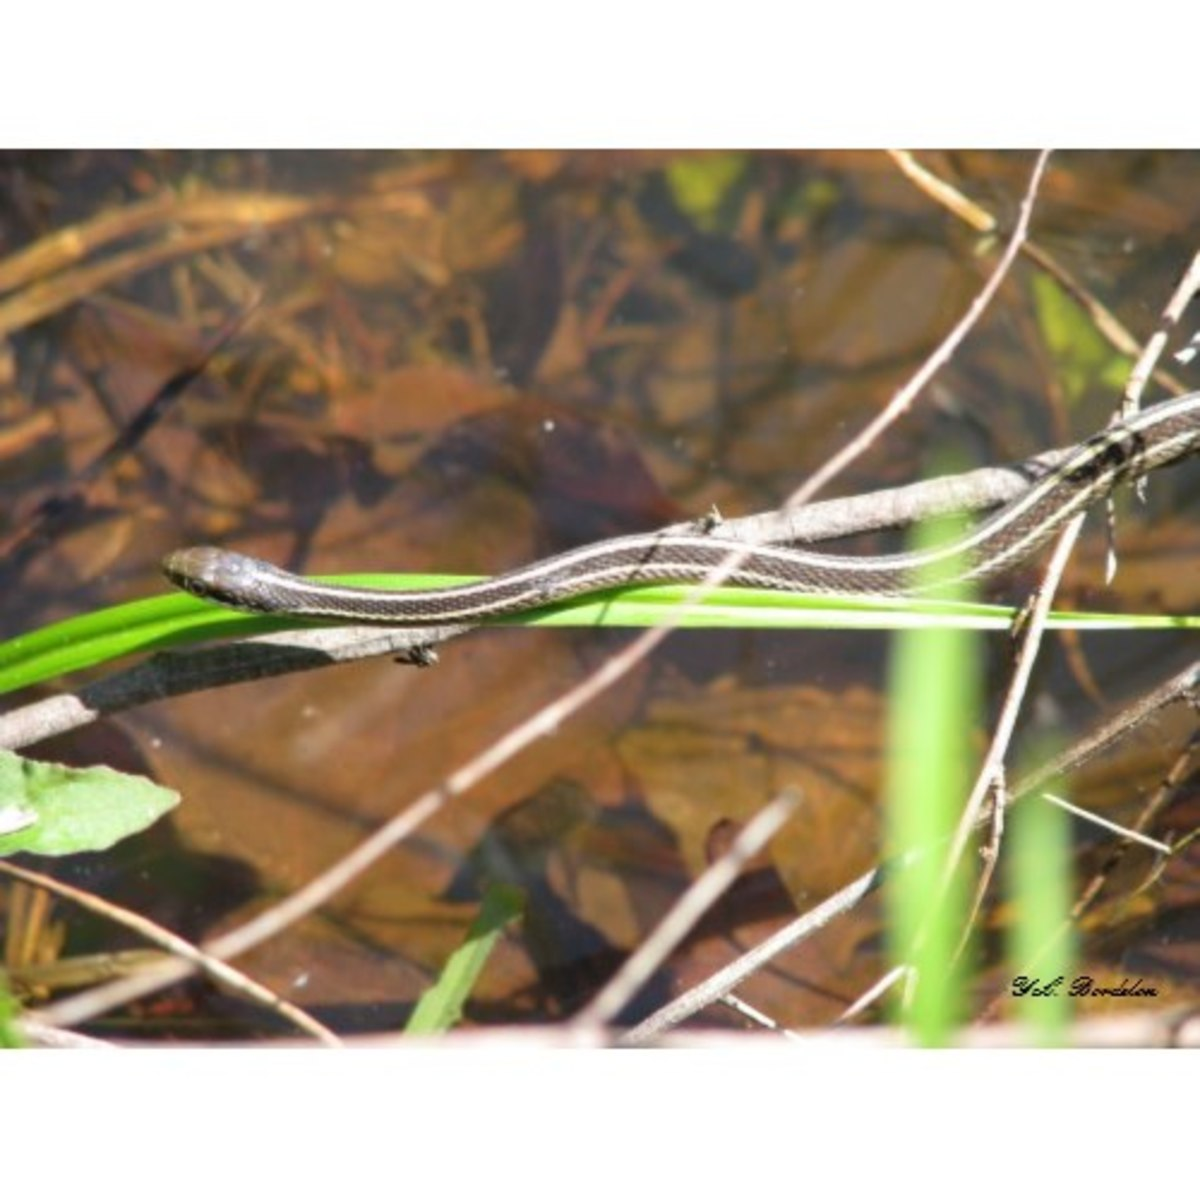 Ribbon snakes eat small prey such as cricket frogs. This individual was hunting one by the pond.